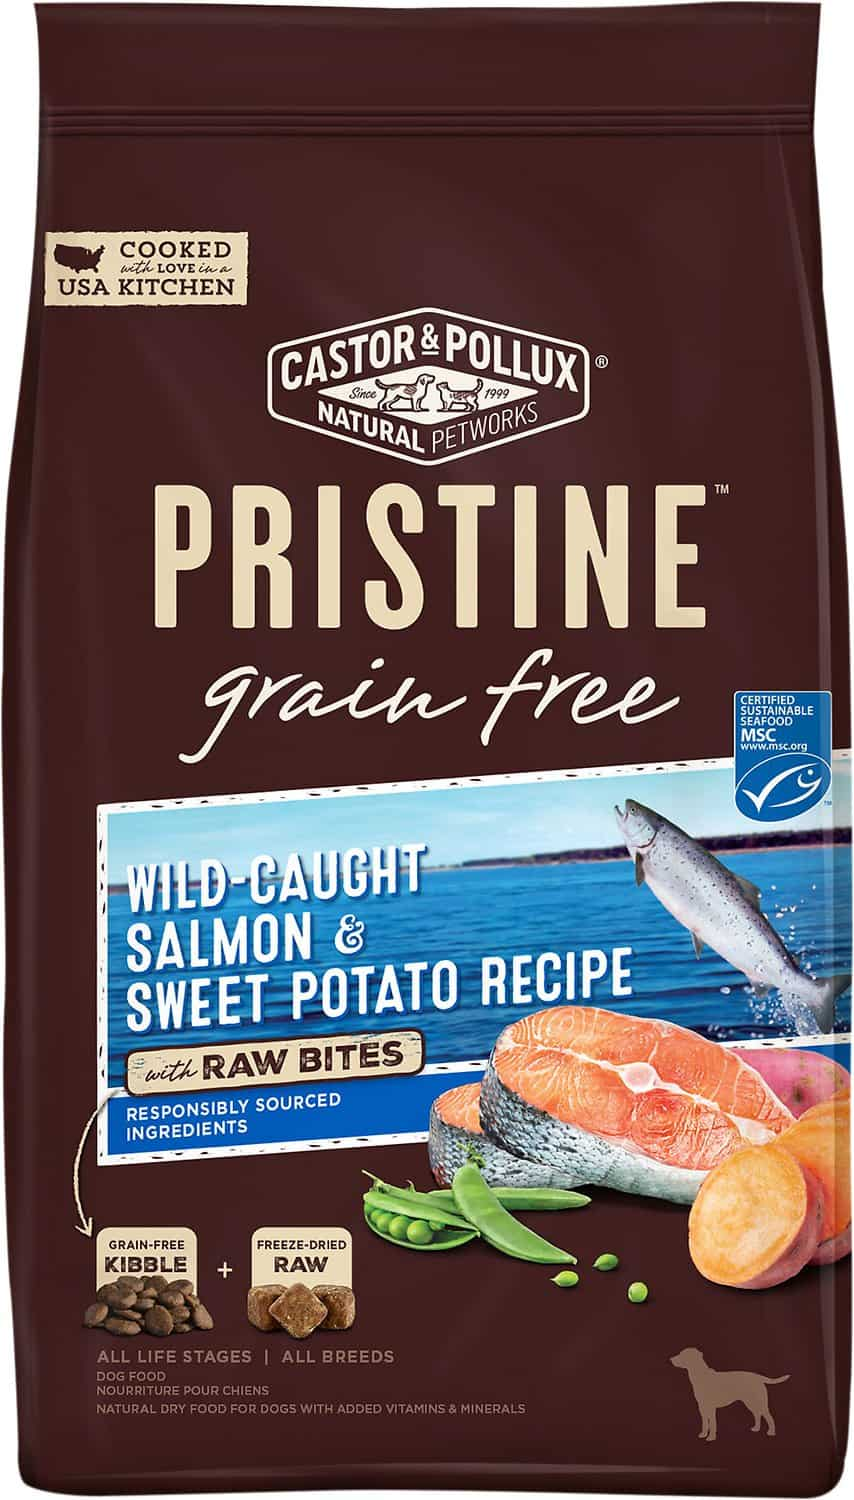 Castor and Pollux Dog Food: 2021 Review, Recalls & Coupons 16